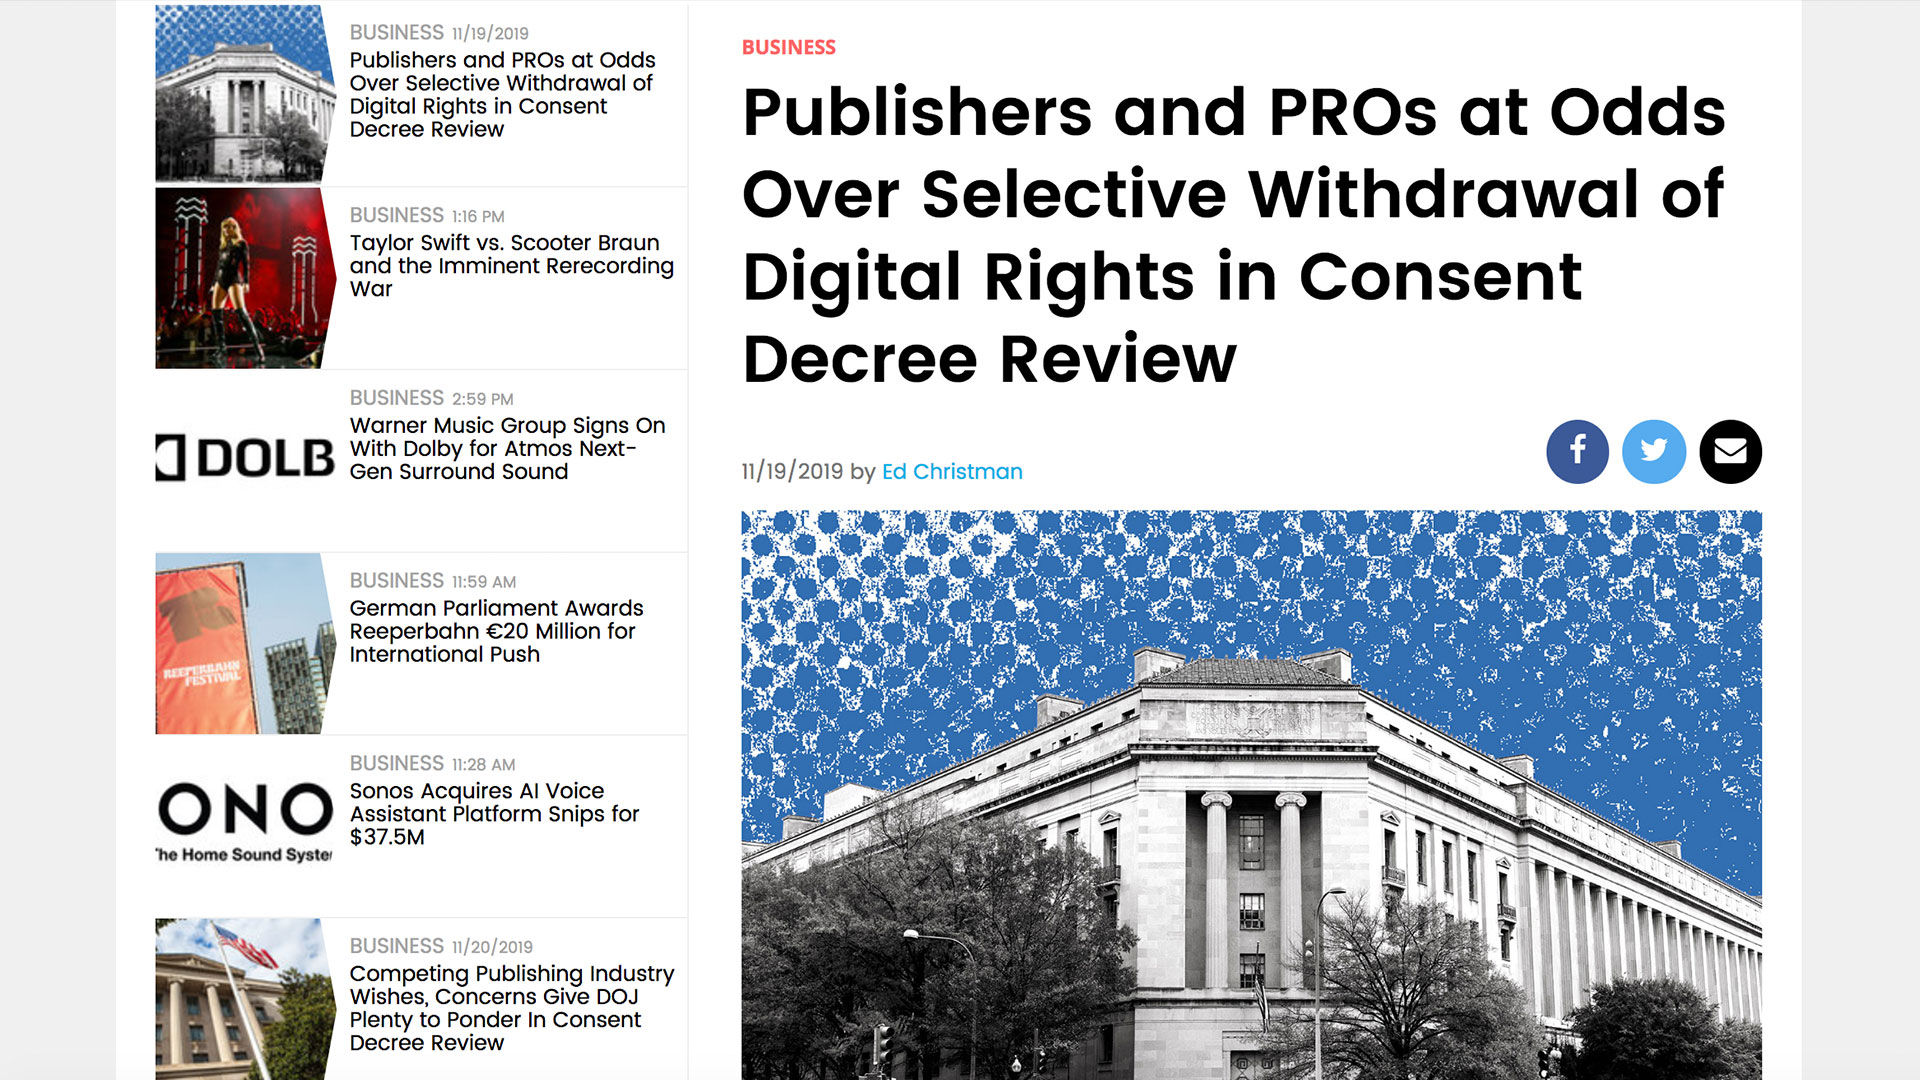 Fairness Rocks News Publishers and PROs at Odds Over Selective Withdrawal of Digital Rights in Consent Decree Review